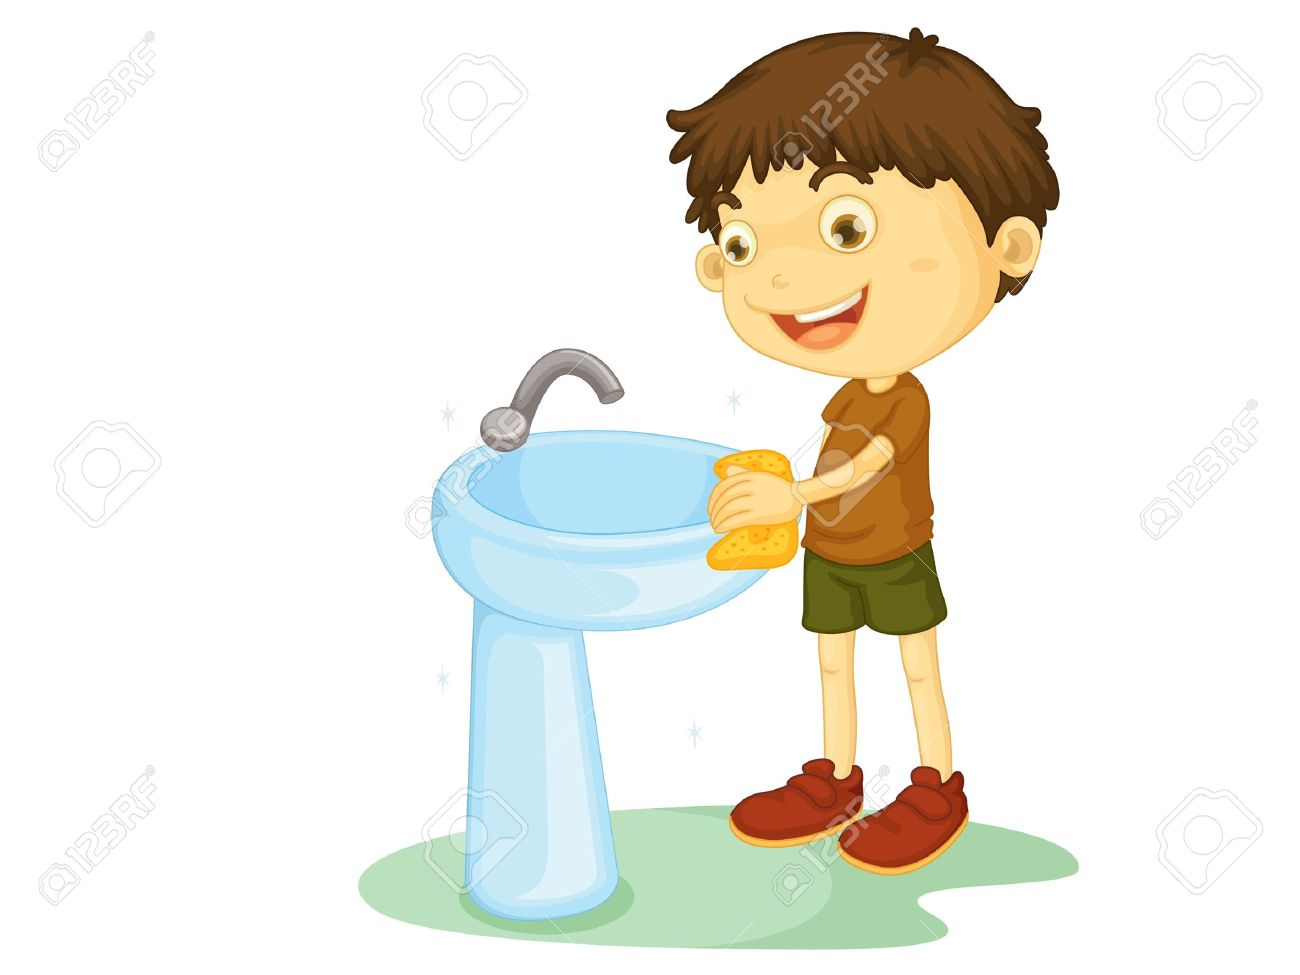 Clean bathroom sink clip art - Wash Basin Child Illustration On A White Background